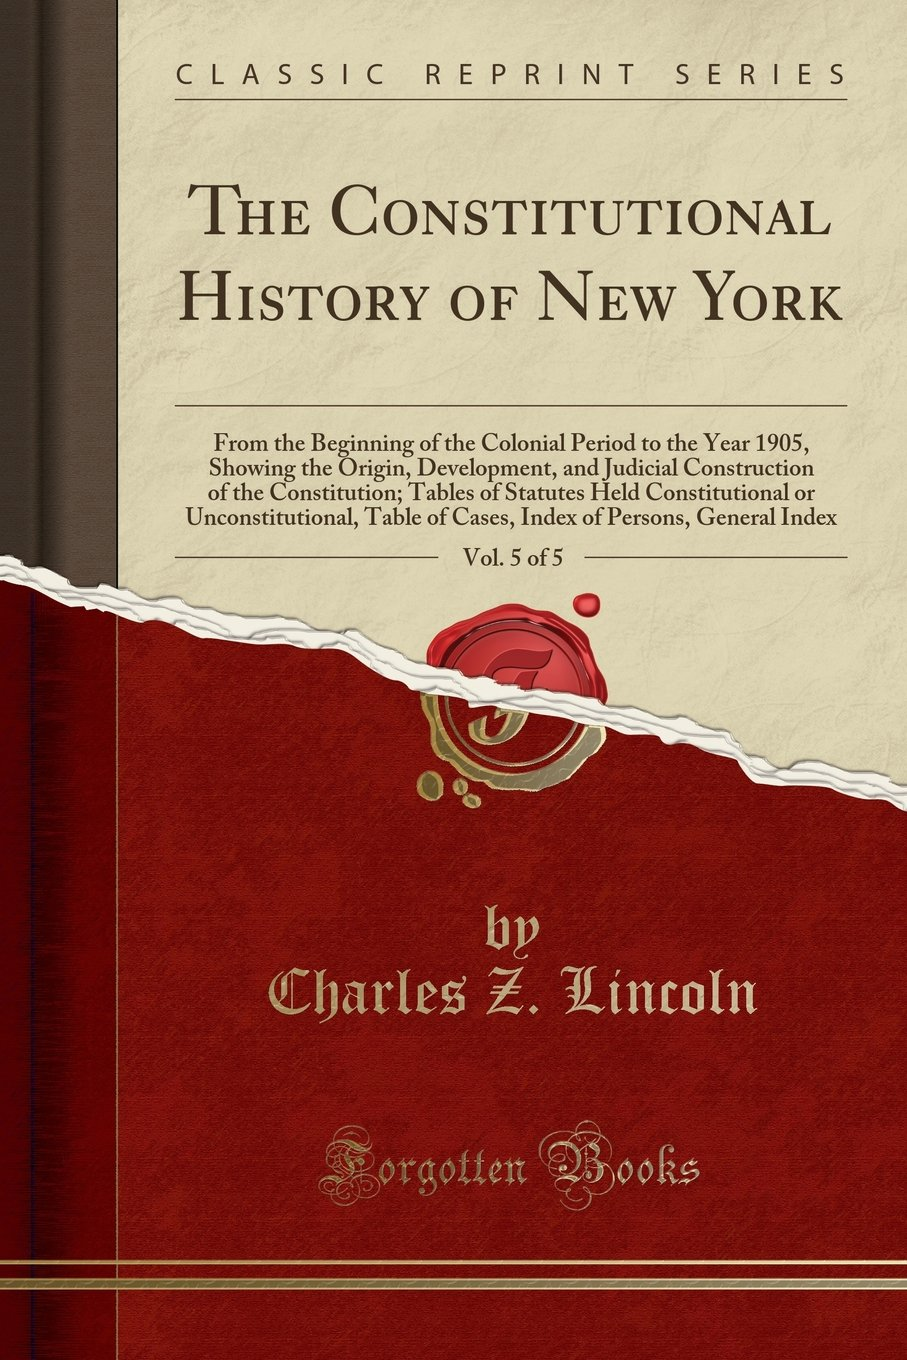 The Constitutional History of New York, Vol. 5 of 5: From the Beginning of the Colonial Period to the Year 1905, Showing the Origin, Development, and ... Held Constitutional or Unconstitutional, Ta PDF